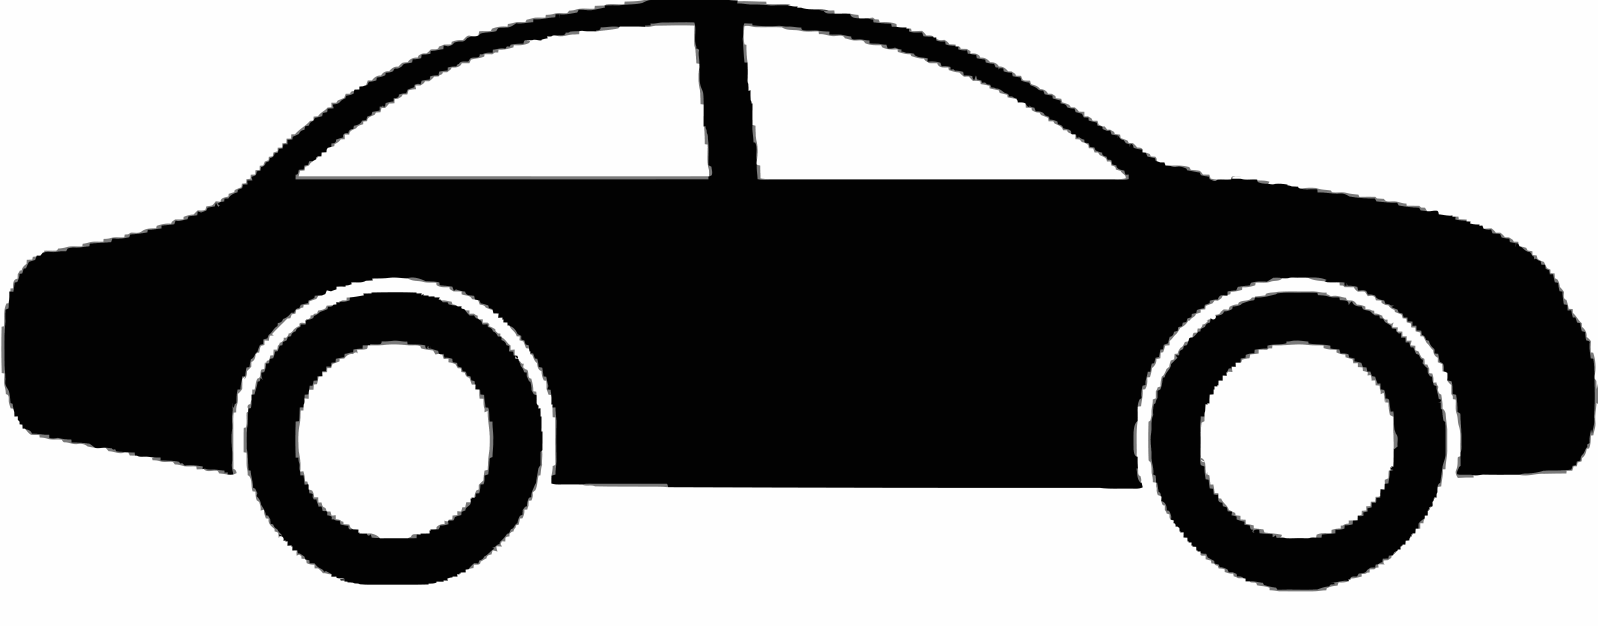 1598x626 Car V Vectorized Free Images